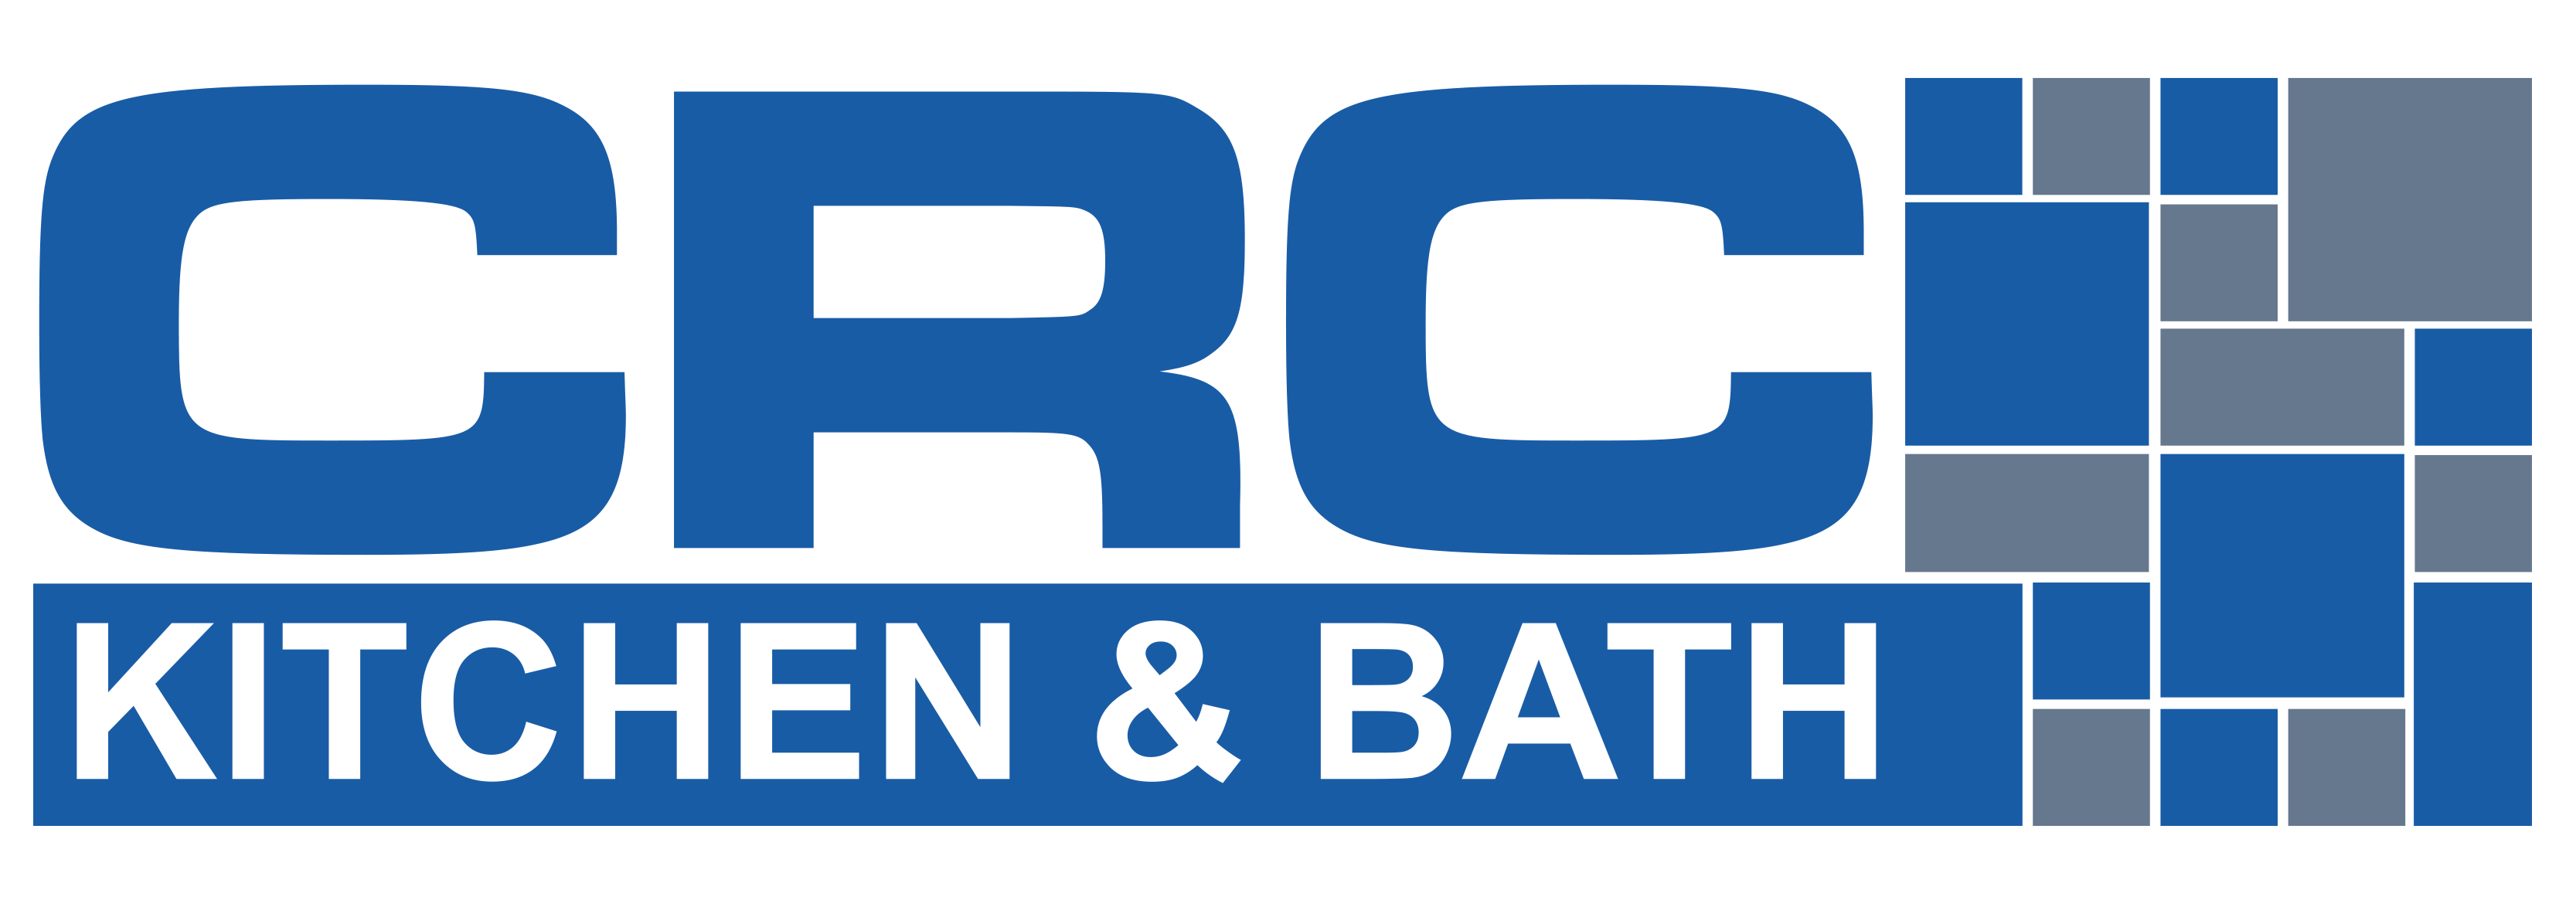 CRC Kitchen & Bath - Custom Kitchen & Bath Remodeling, San Angelo, TX